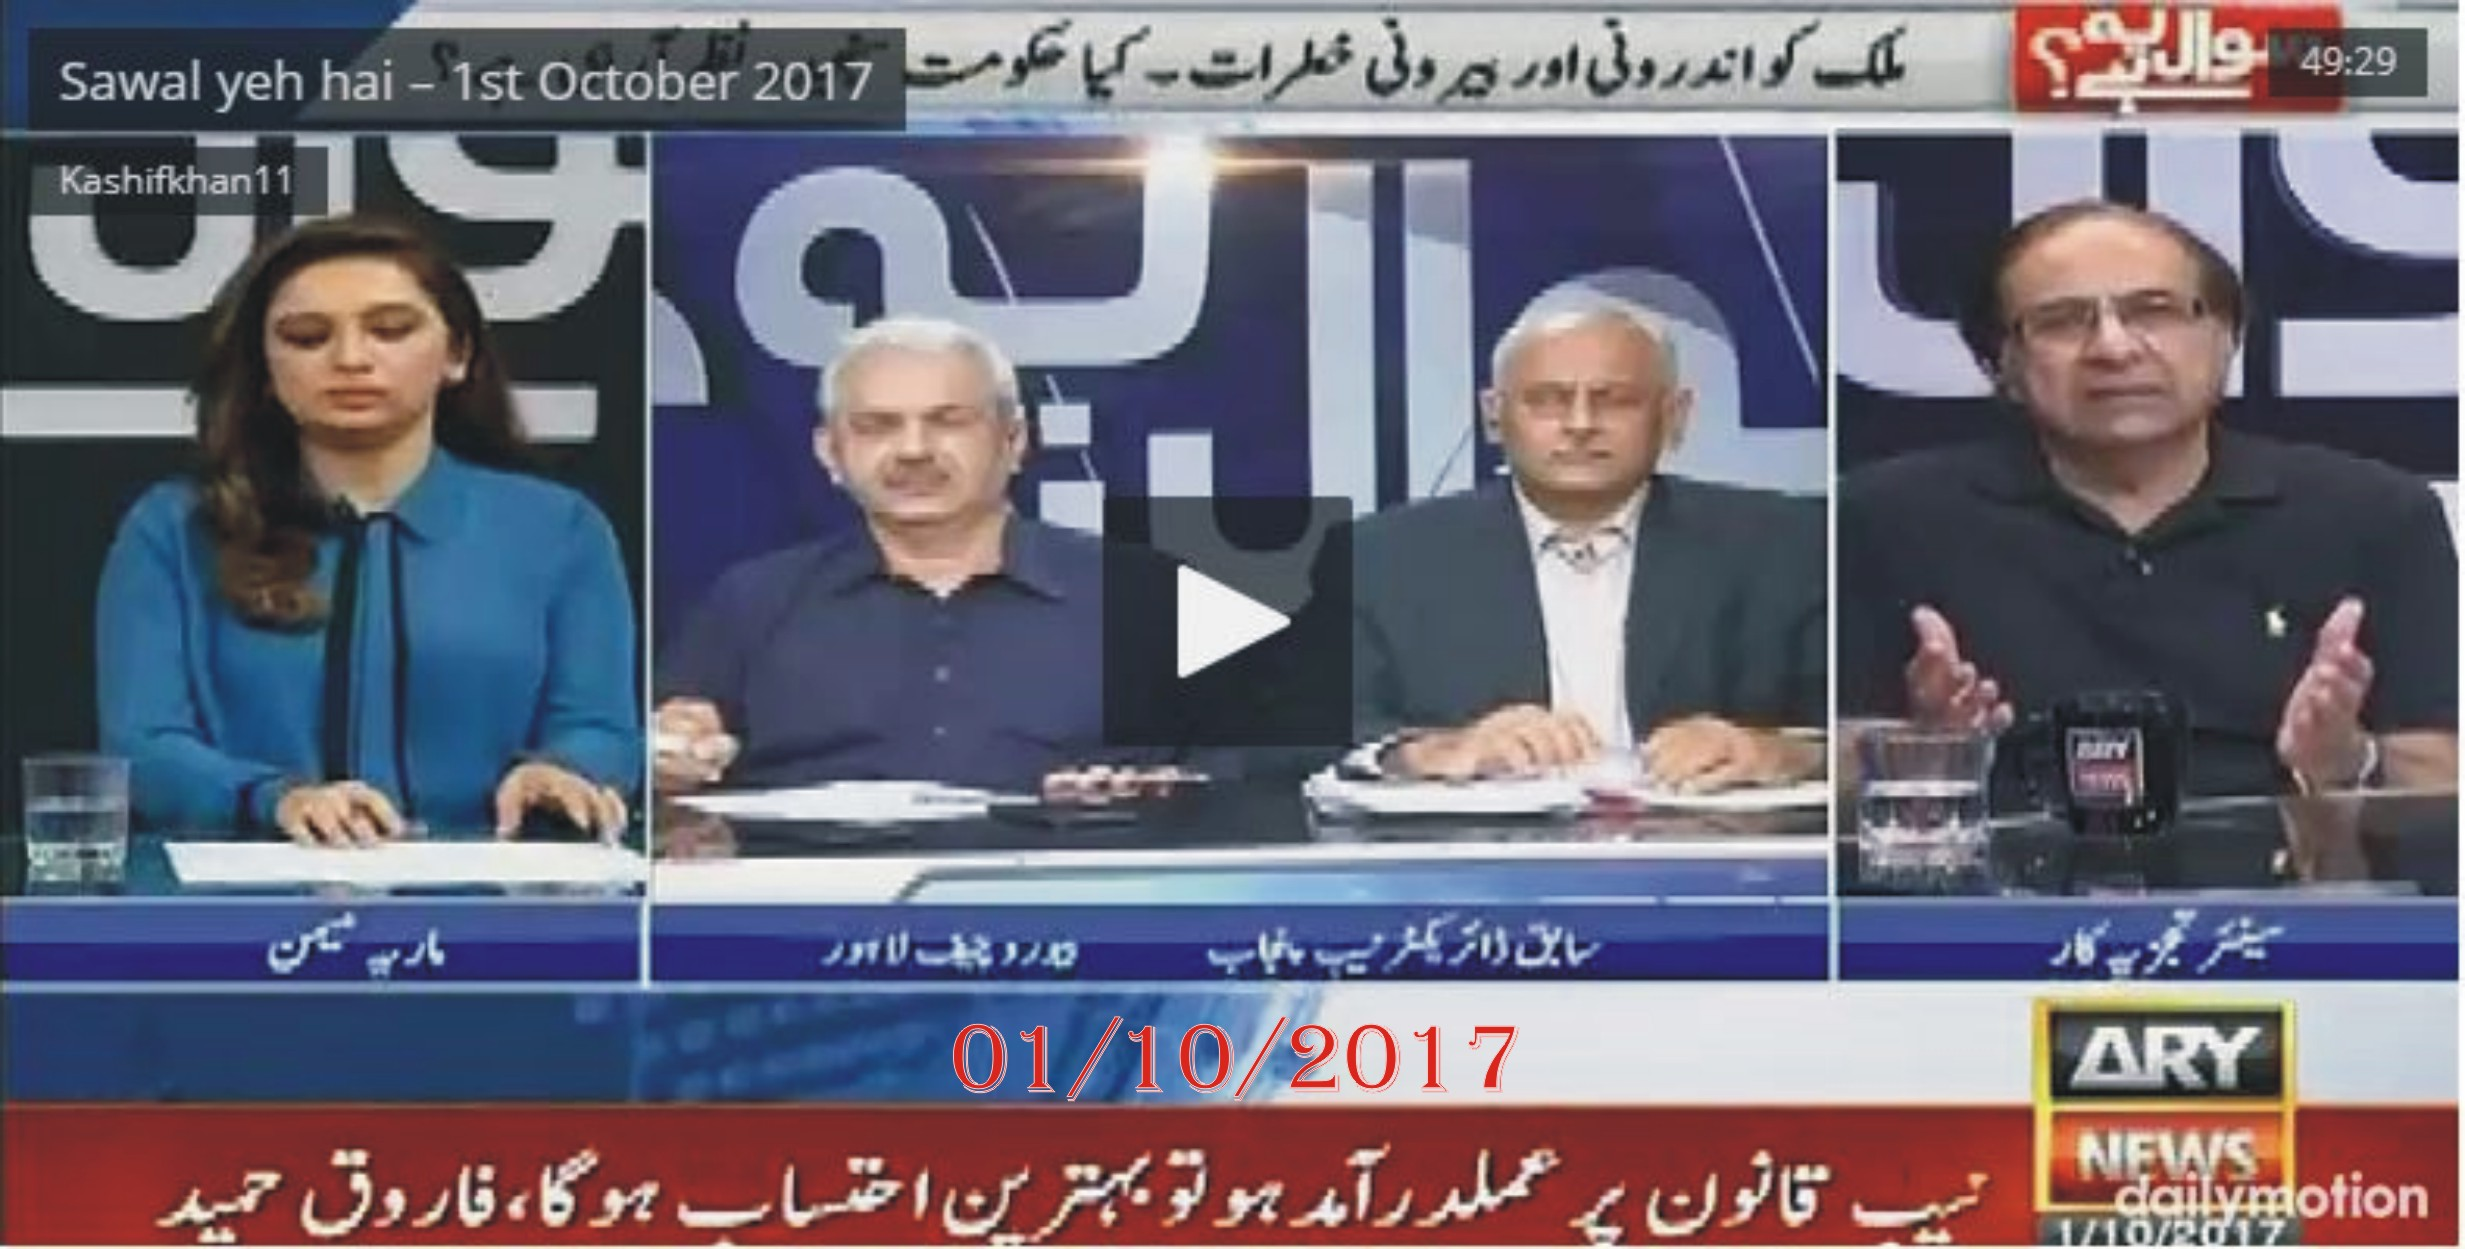 01 Oct 2017 - Sawal yeh hai – 1st October 2017